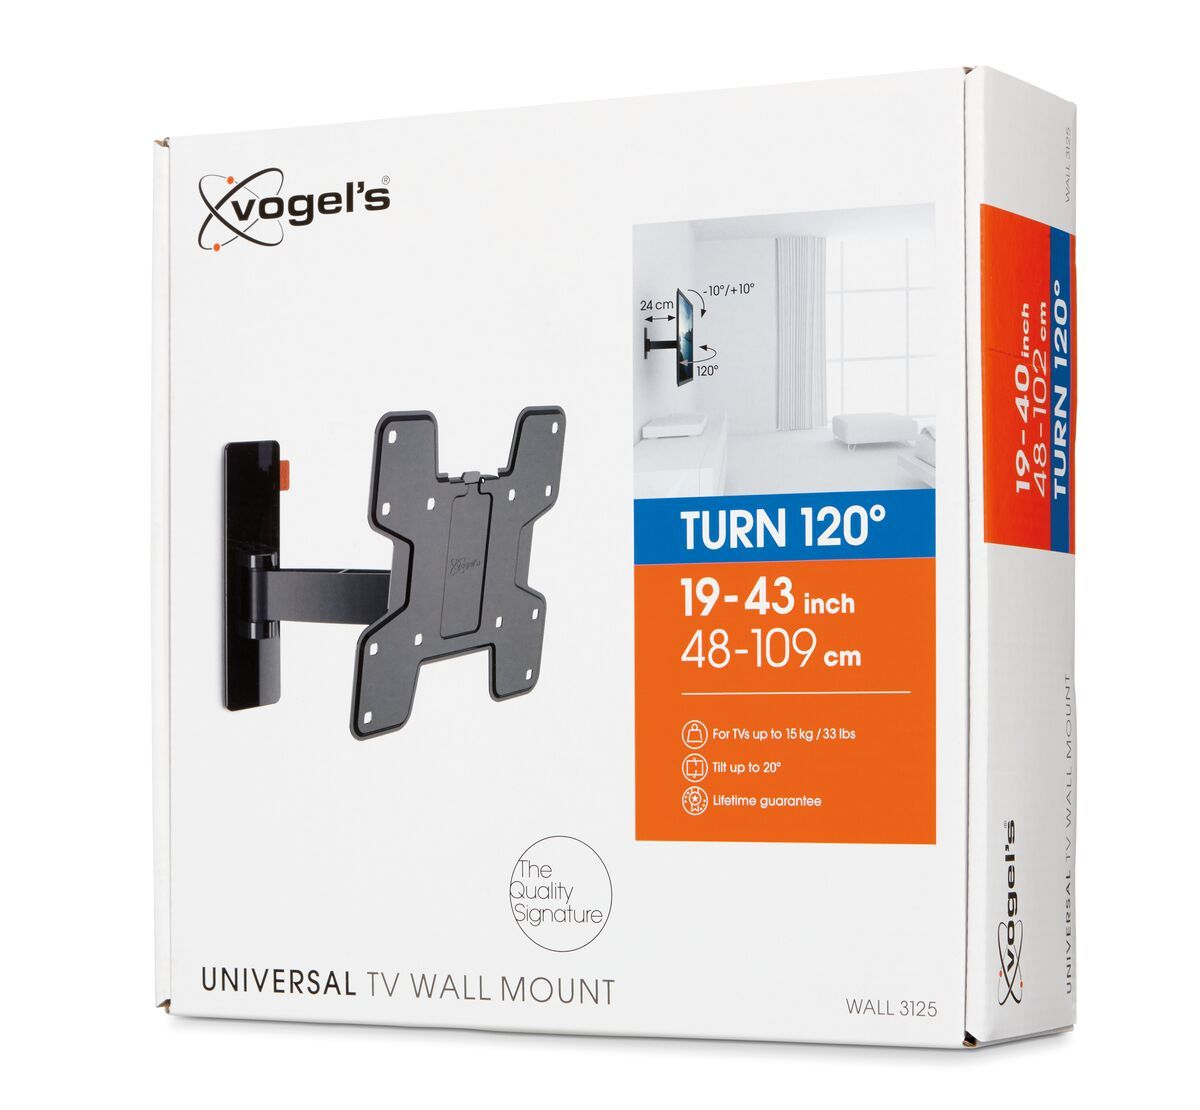 Vogel's WALL 3125 Full-Motion TV Wall Mount - Suitable for 19 up to 43 inch TVs - Motion (up to 120°) - Tilt -10°/+10° - Pack shot 3D